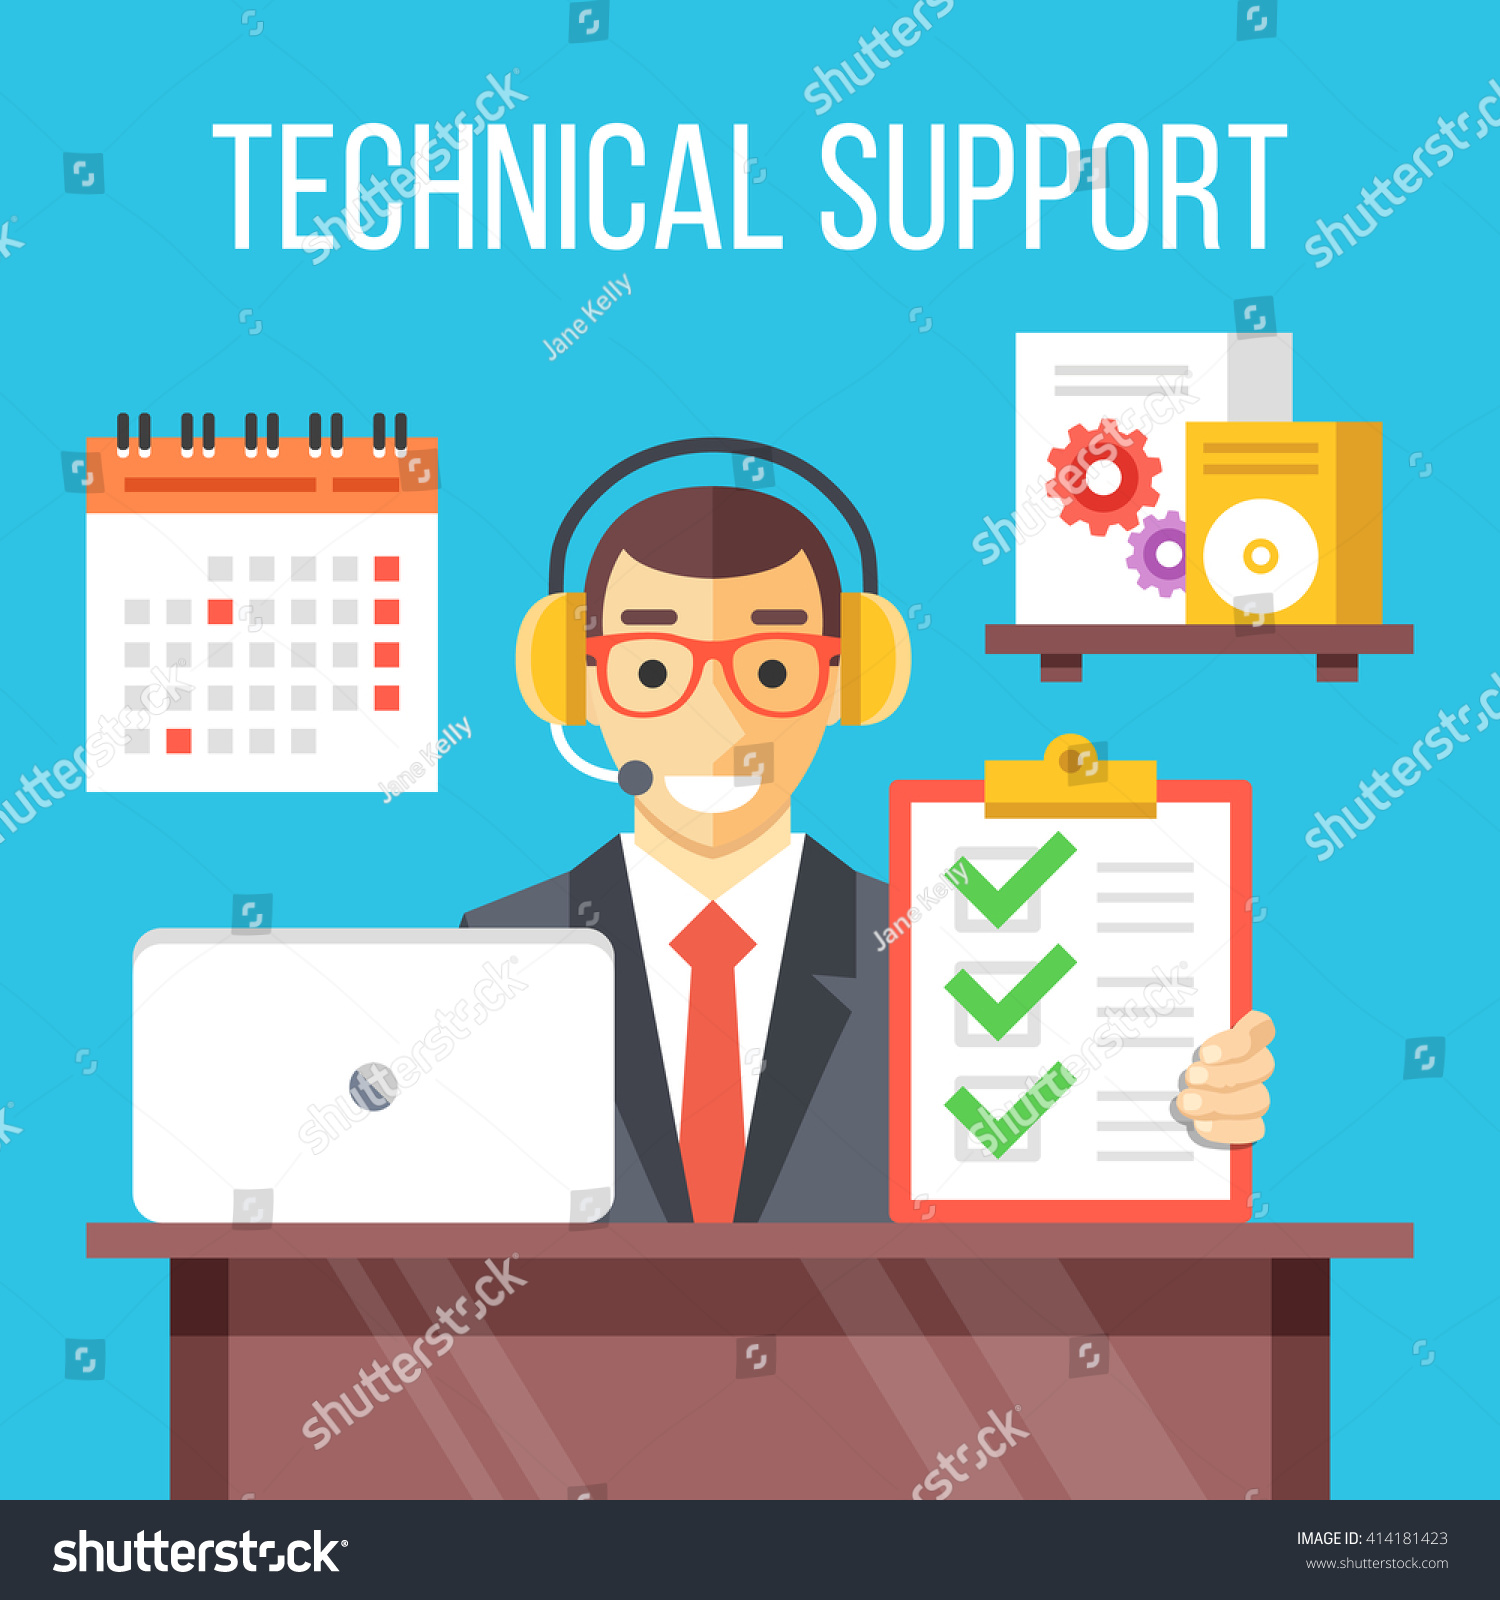 technical support specialist work call center stock vector technical support specialist at work call center agent answers customer questions give professional support